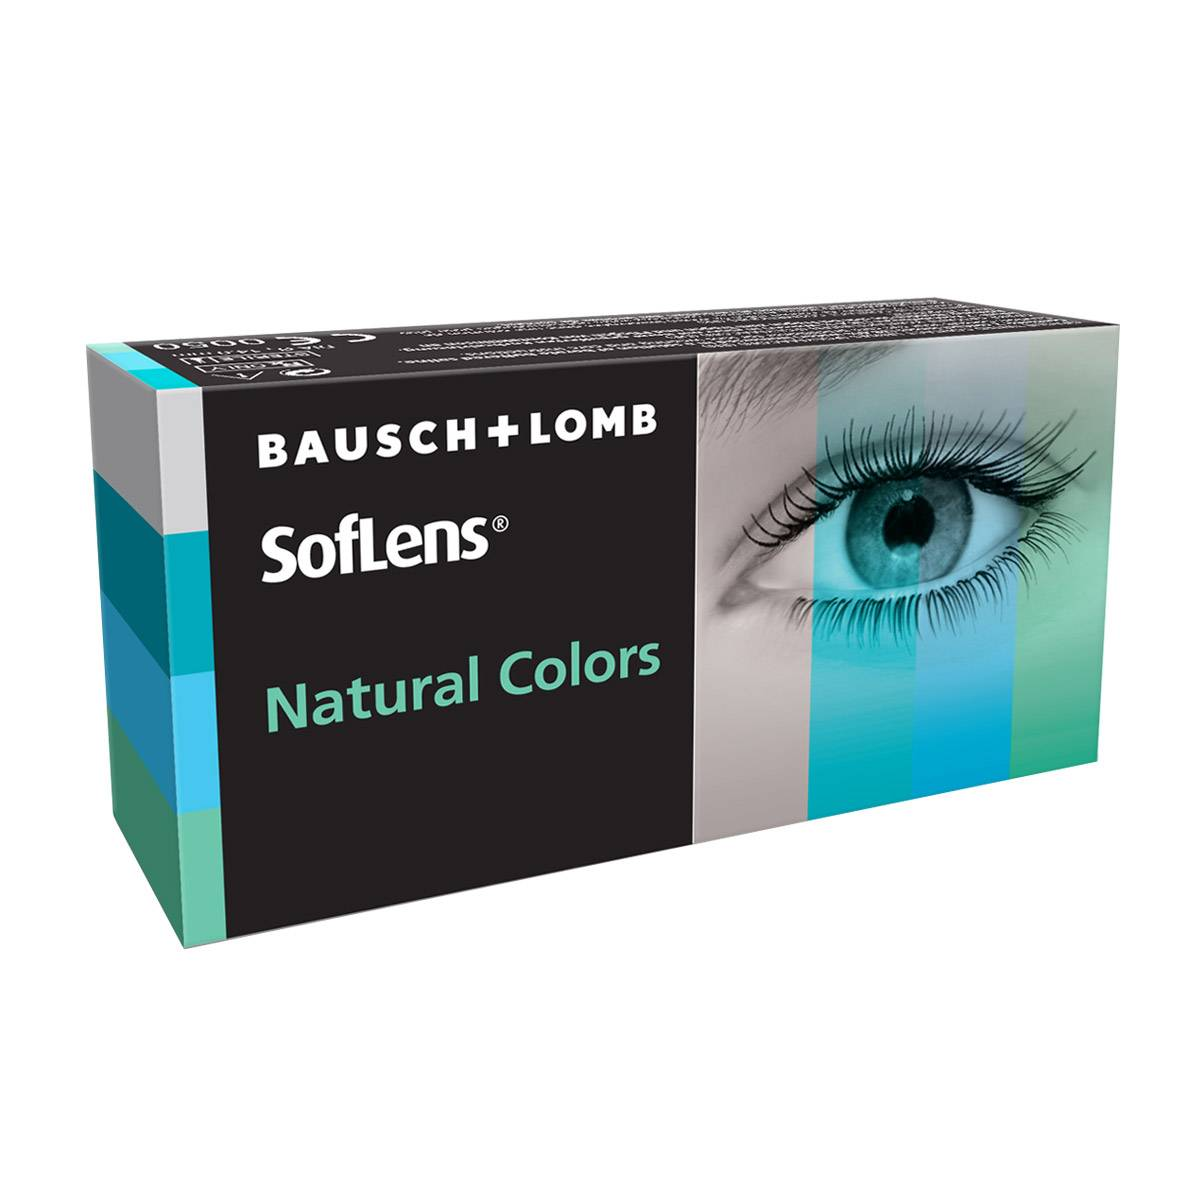 Bausch & Lomb Soflens Natural Colors (2 Contact Lenses), Bausch & Lomb, Monthly Coloured Lenses, Polymacon B